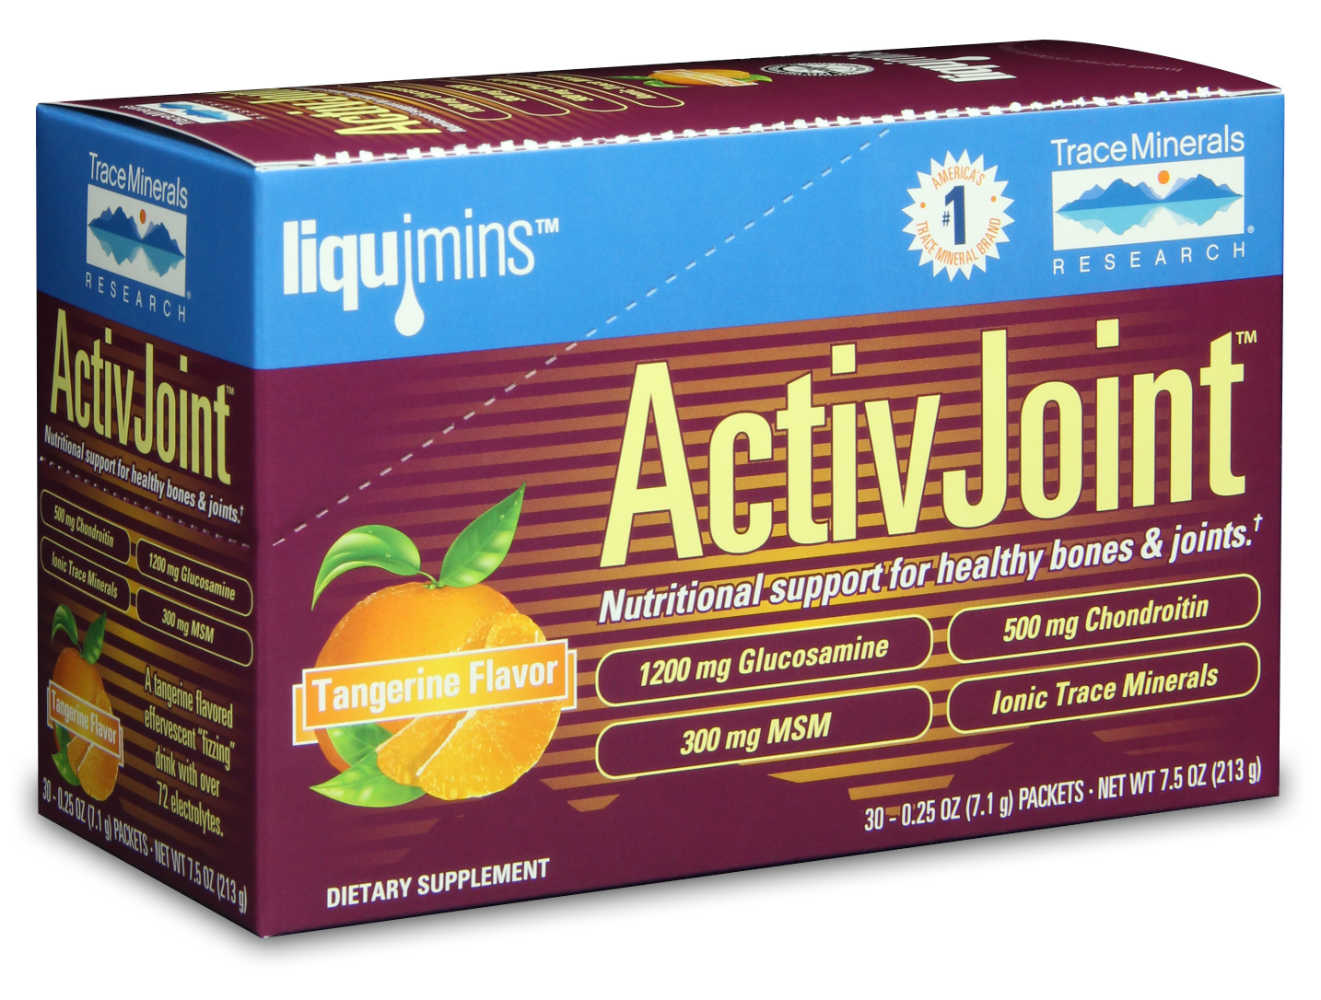 Trace Minerals Research: Activ Joint 30 Packets